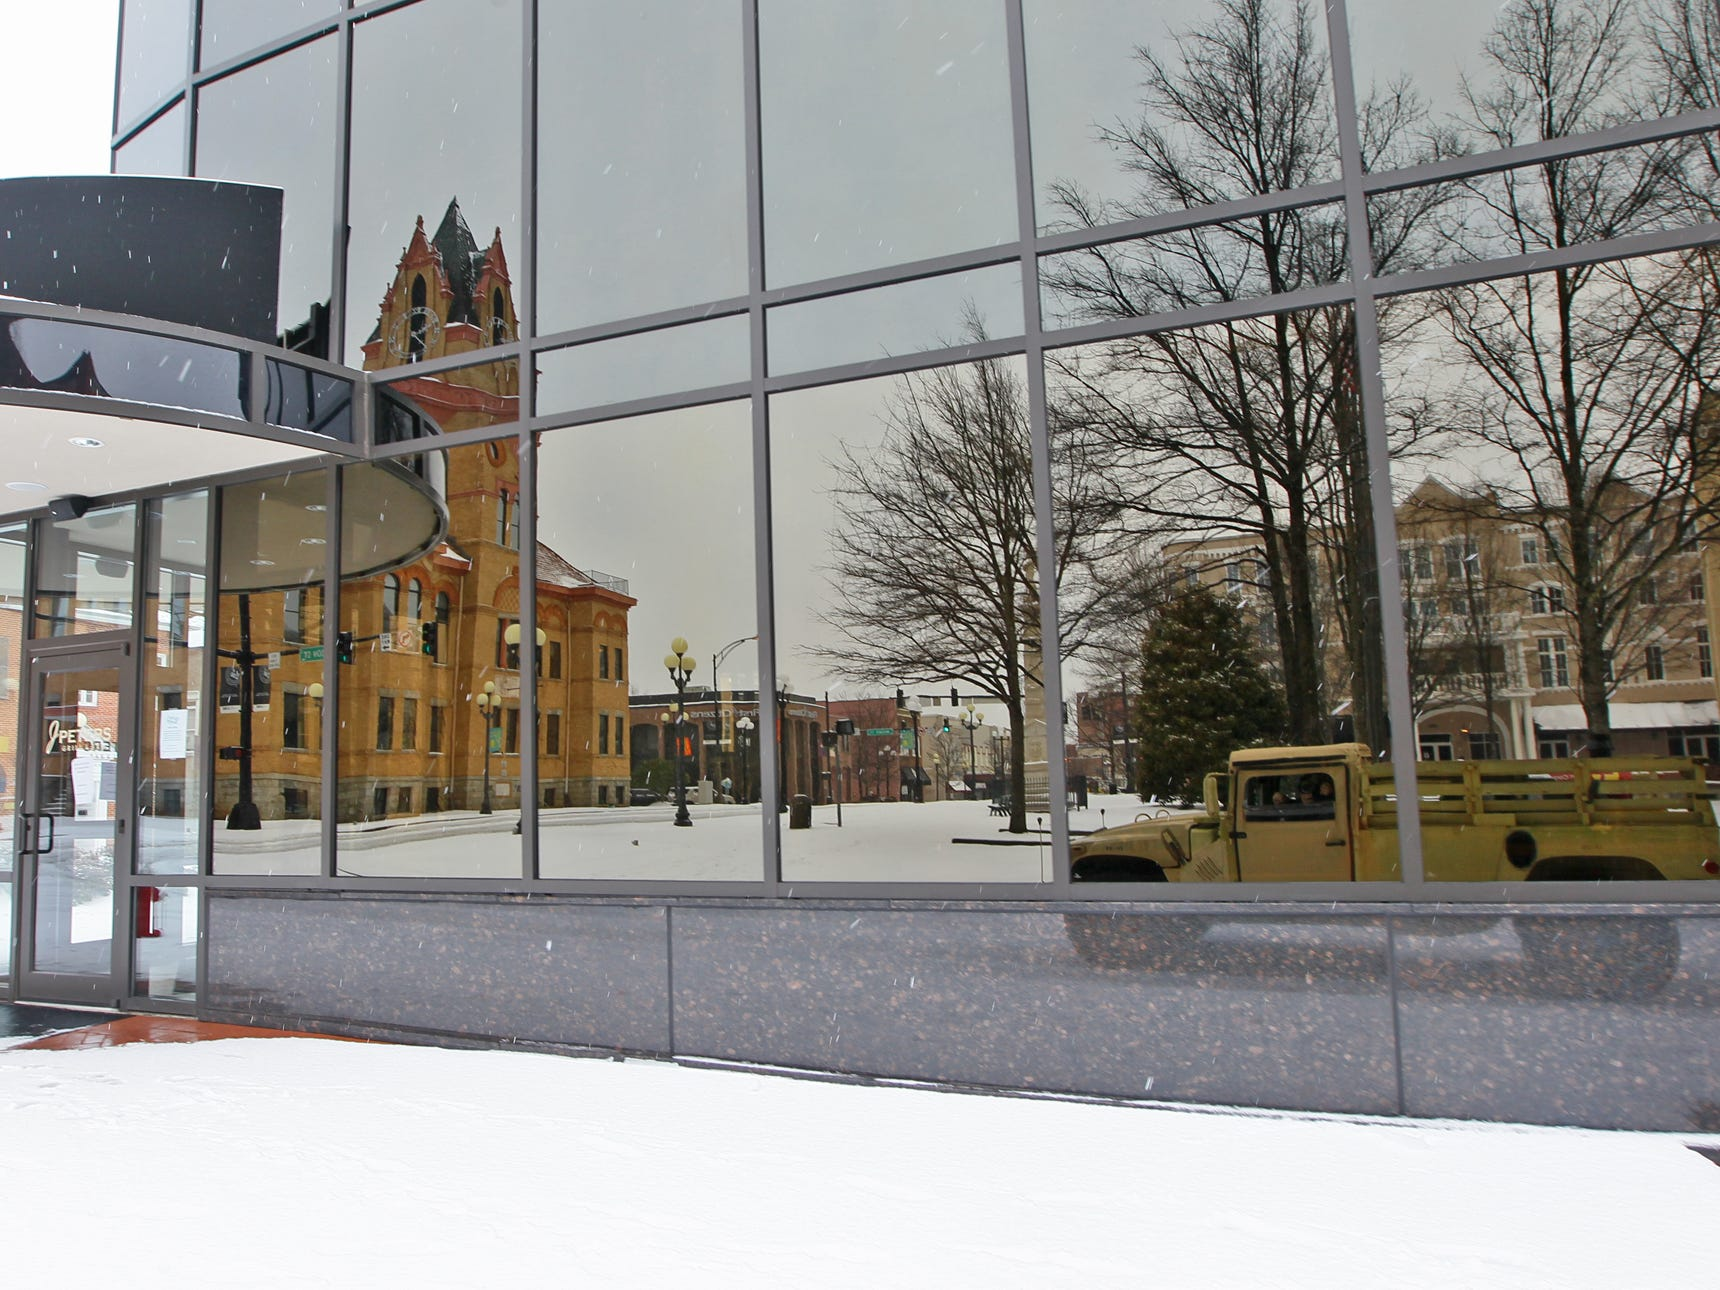 A reflection of the Historic County Courthouse, seen in the windows of J. Peters restaurant in downtown Anderson during the first snow of 2014.